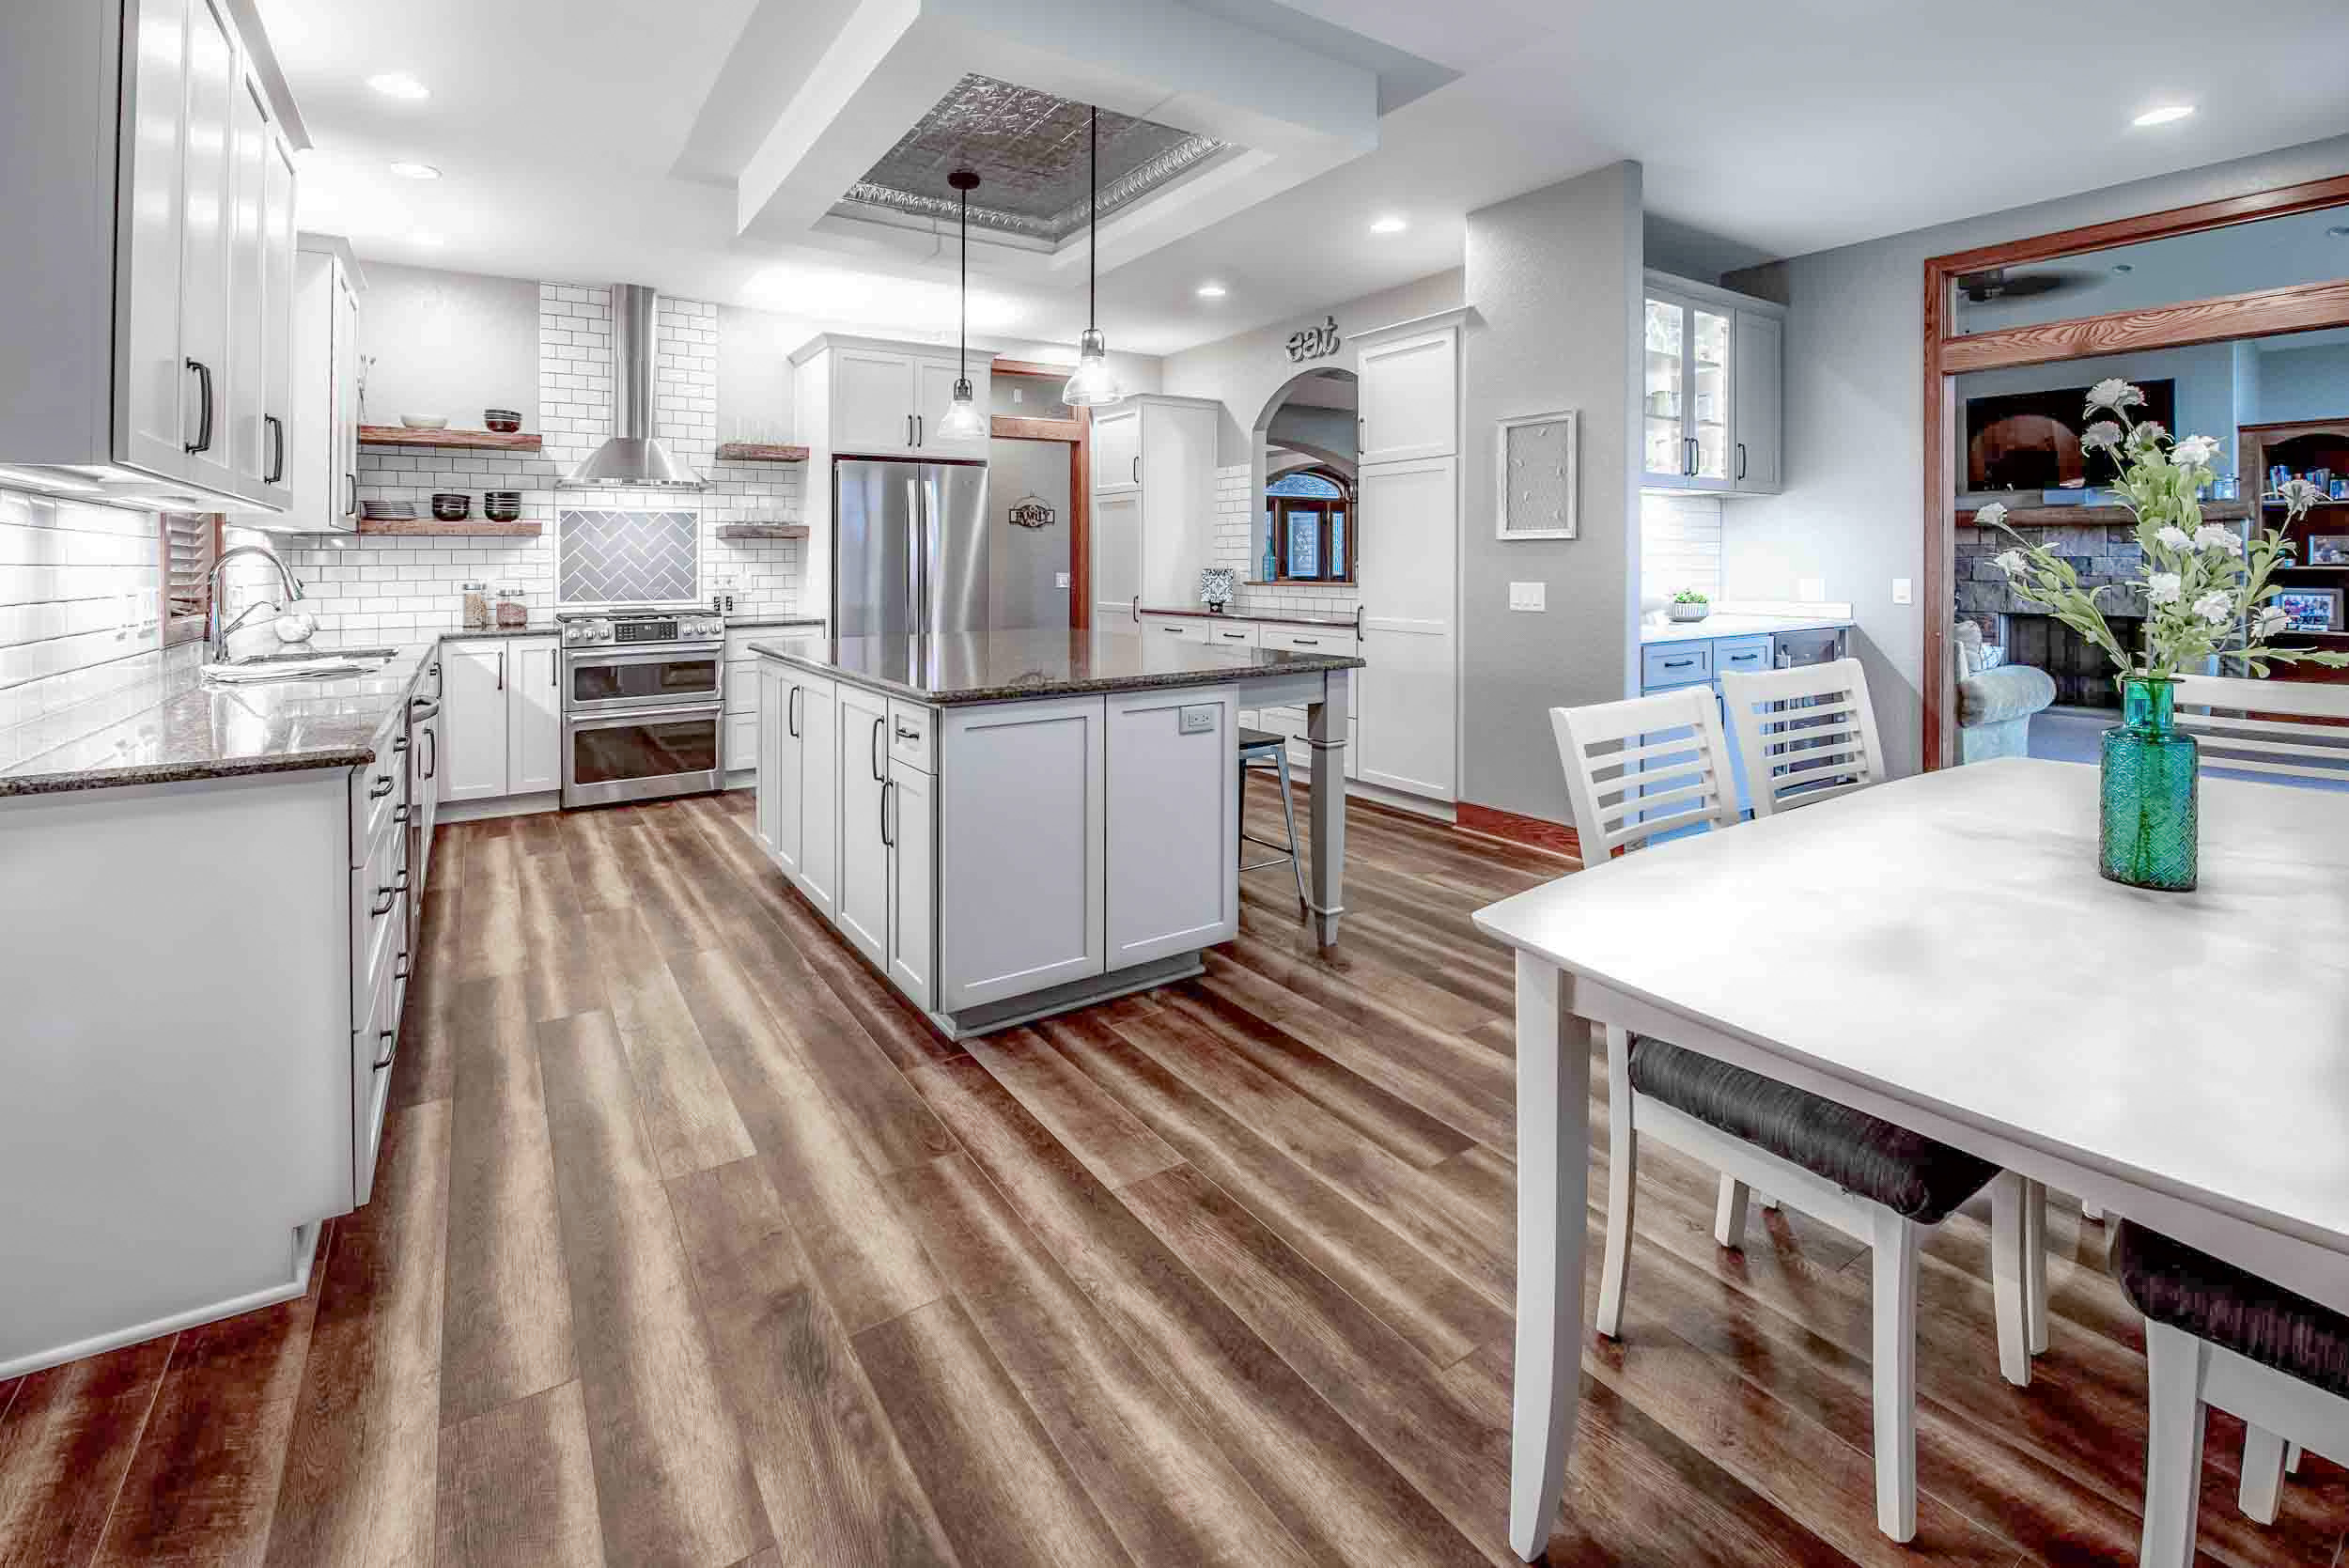 How to hire a remodeling contractor.